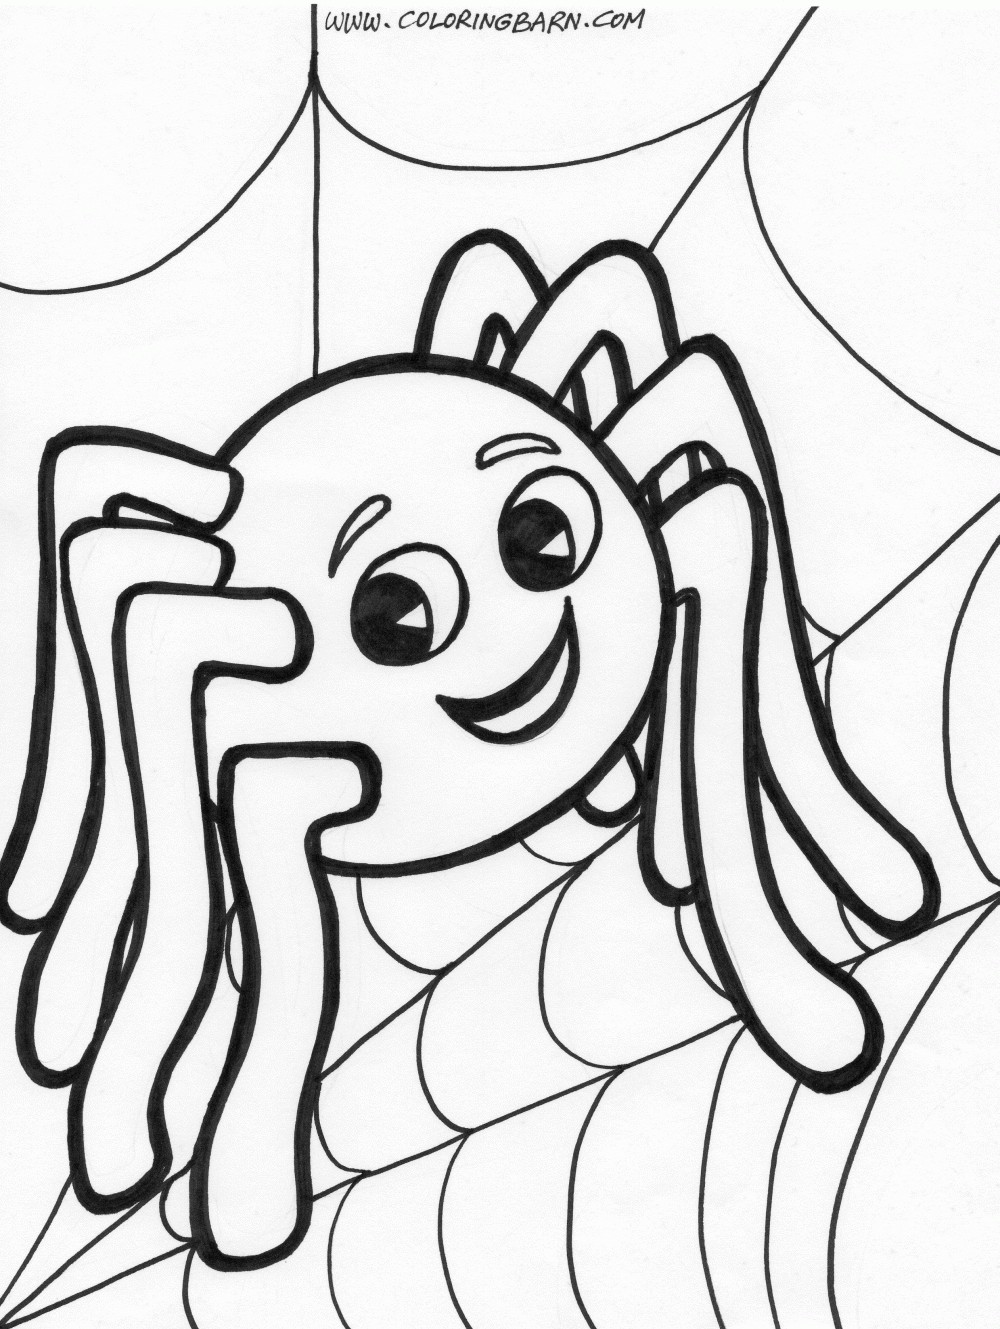 preschool coloring pages pdf coloring pages for preschoolers pdf at getdrawings free pdf preschool pages coloring